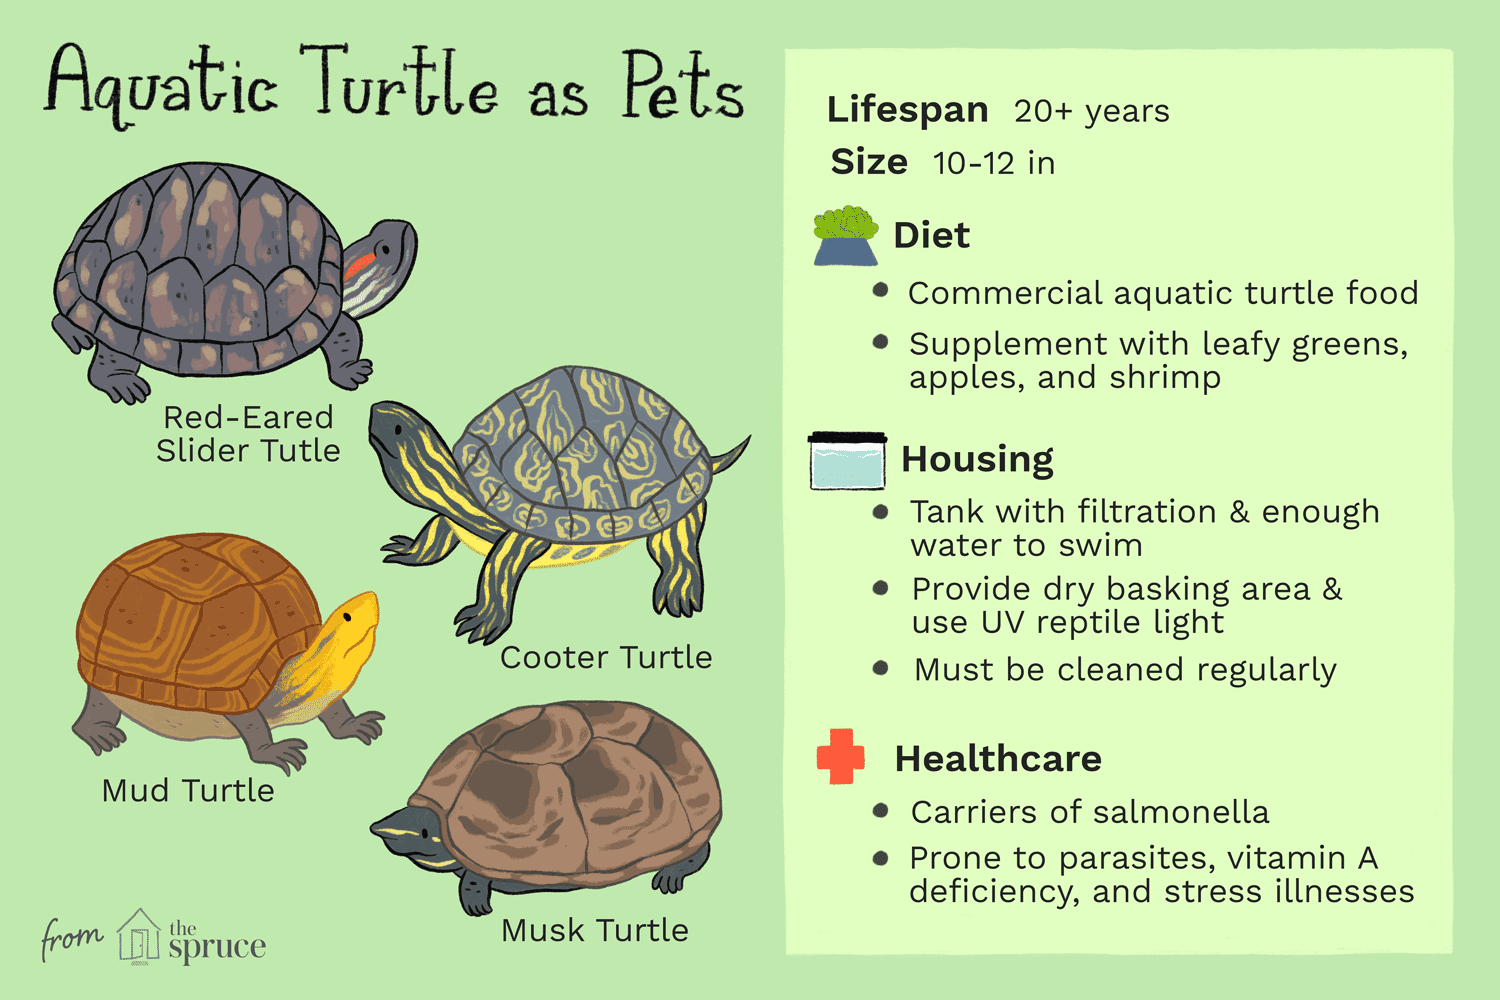 All About Keeping Pet Aquatic Turtles